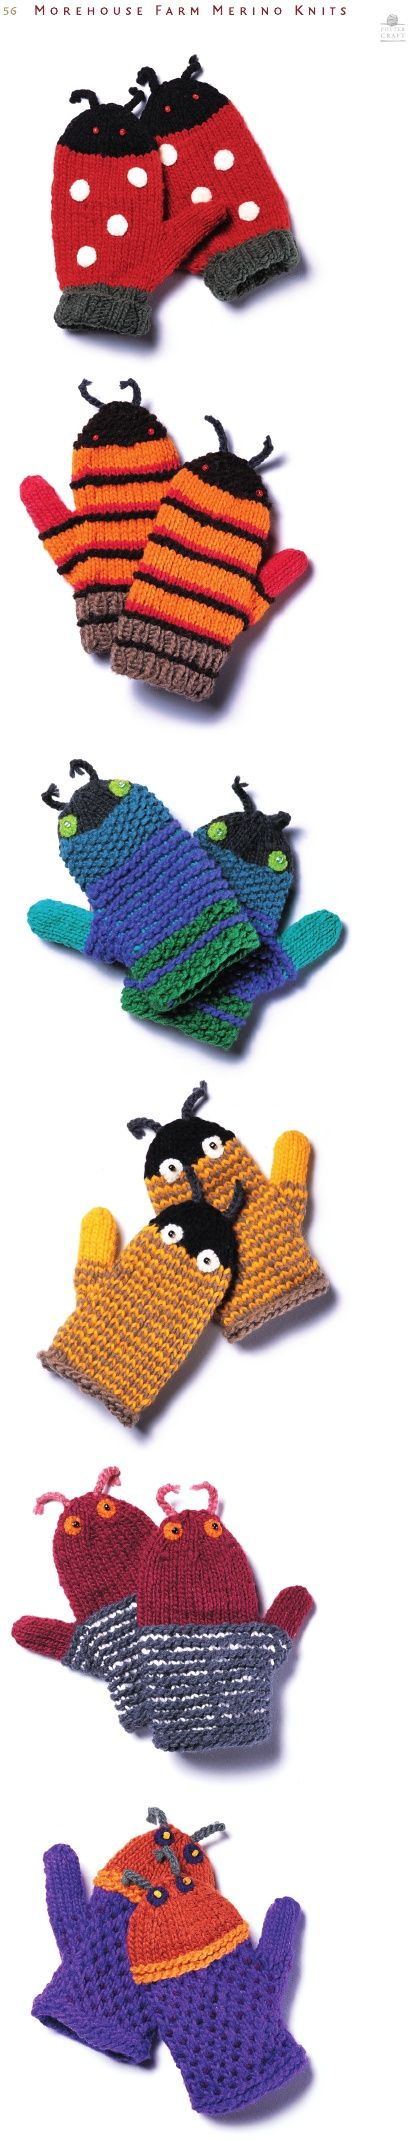 DIY - Buggy Knits Project. So cute and perfect for a shoe box gift!